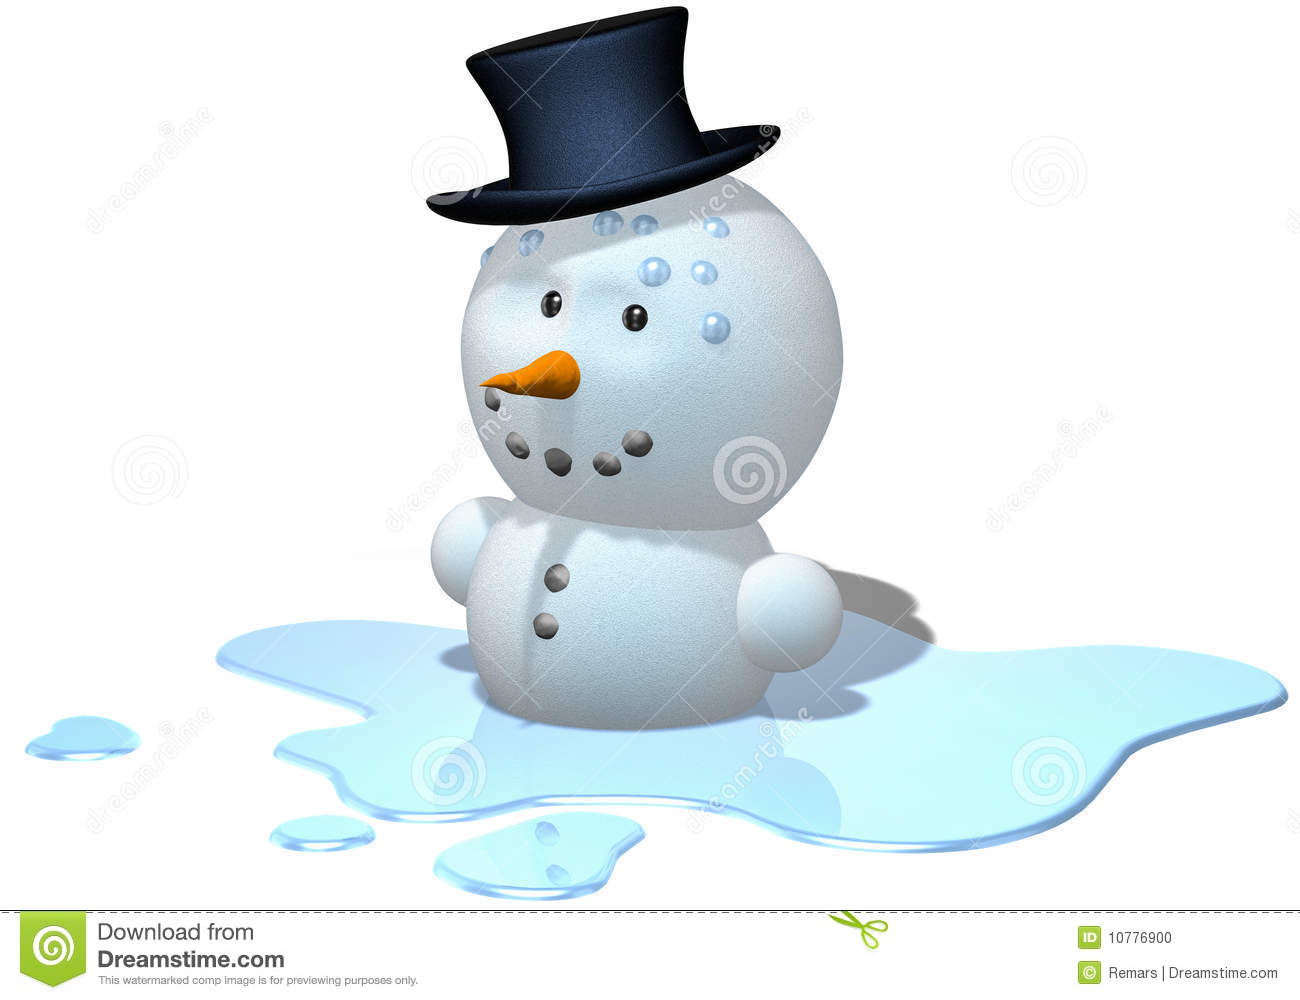 Melting Snowman Stock Illustrations 134 Melting Snowman Stock Illustrations Vectors Clipart Dreamstime